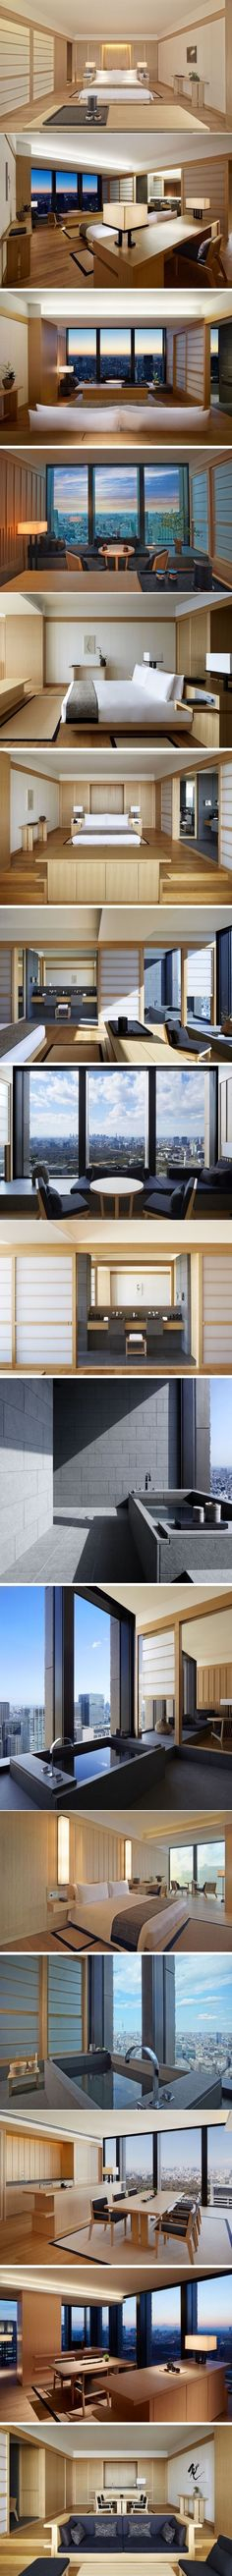 How-to mix contemporary interior design with elements of Japanese culture | CONTEMPORIST